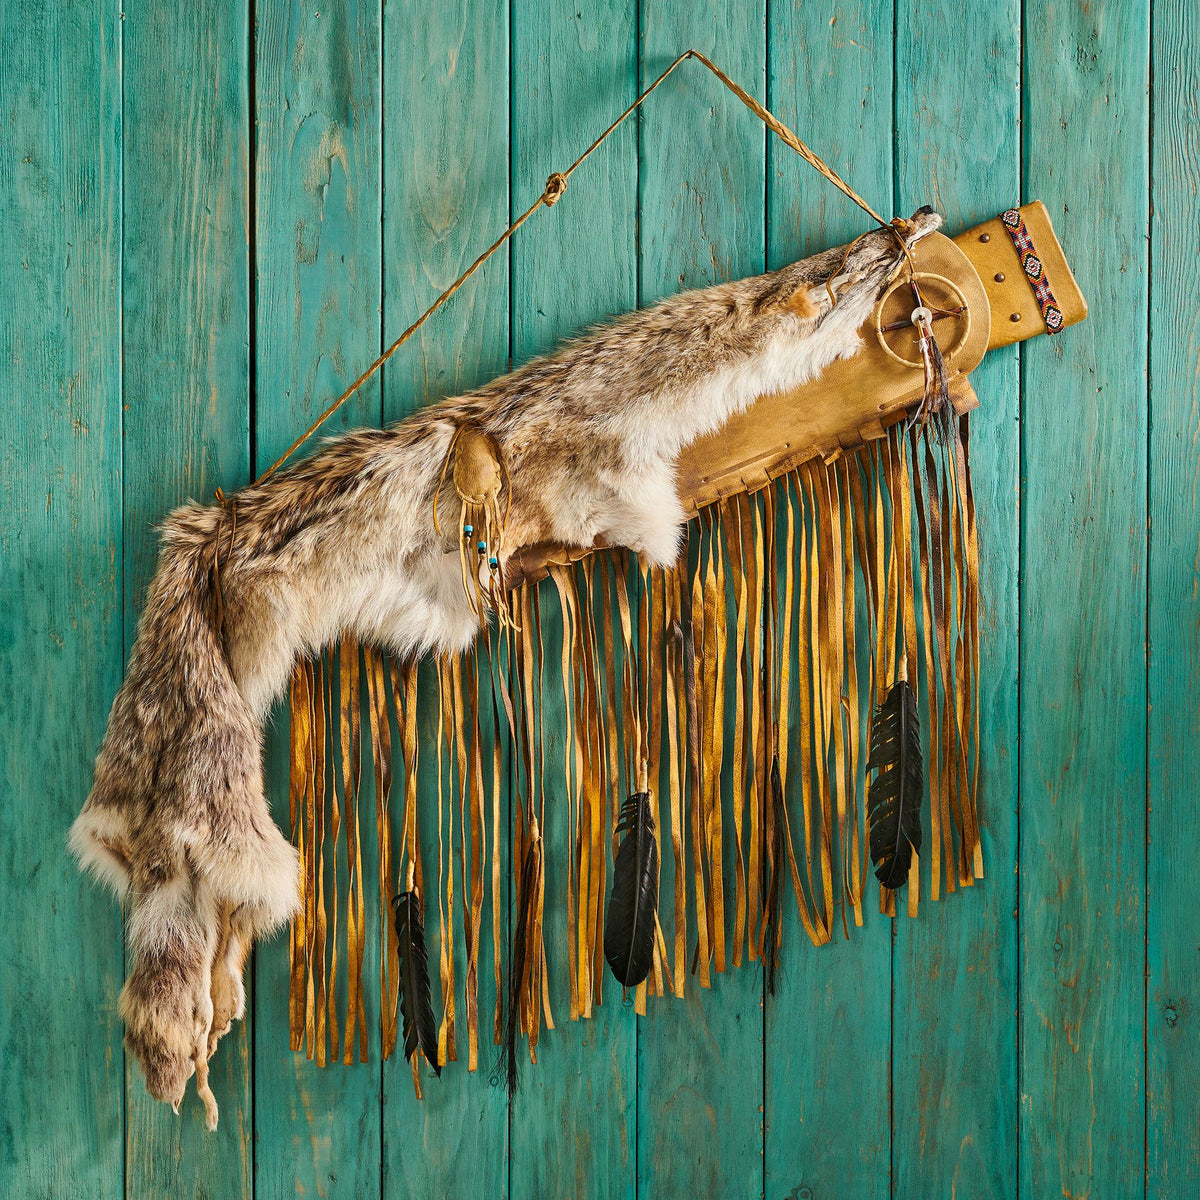 Coyote Fur Antique Leather.